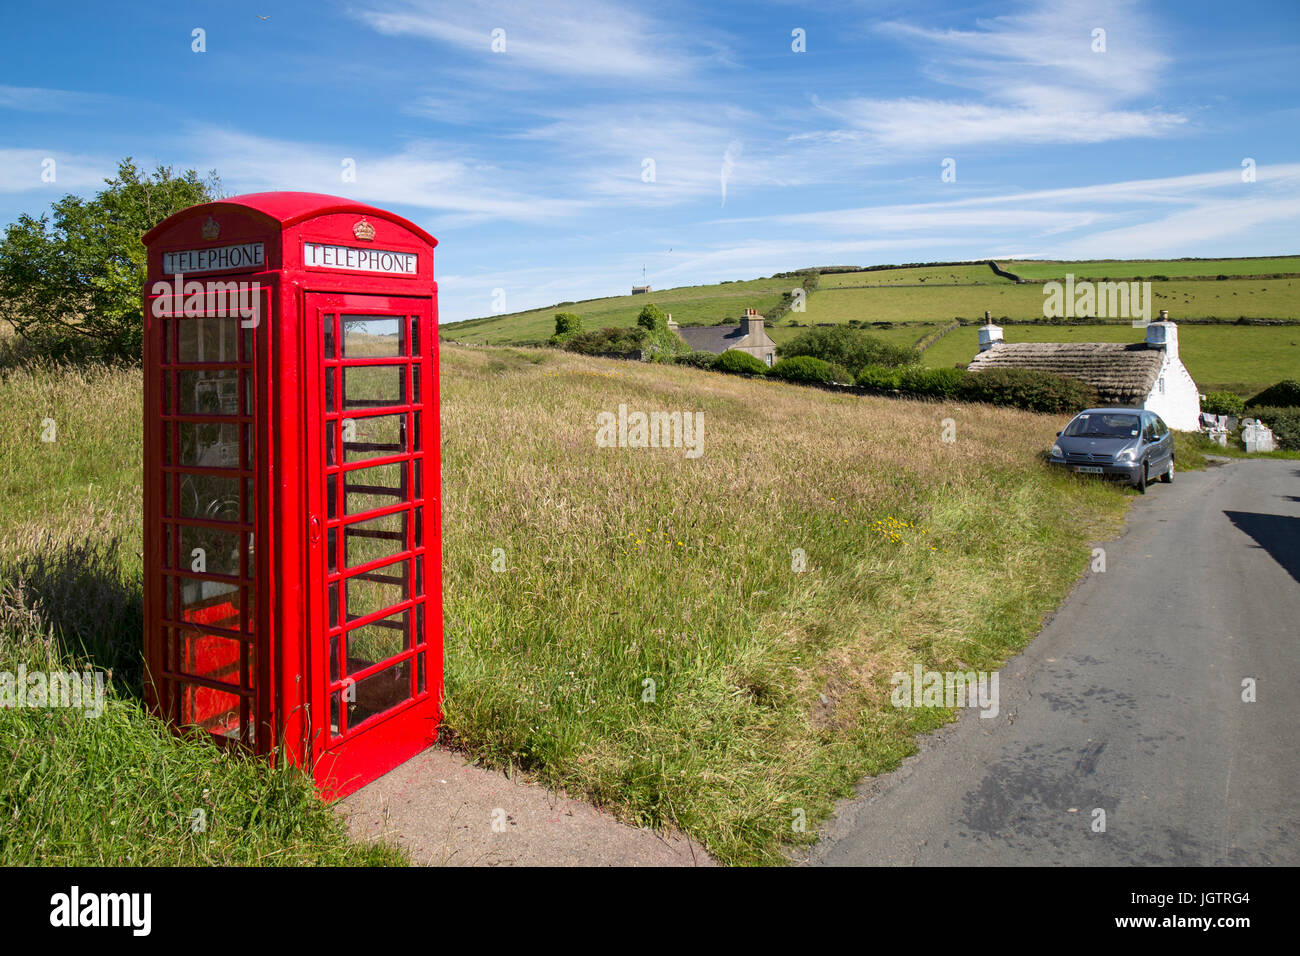 British red telephone box in the village of Cregneash on The Isle of Man. - Stock Image